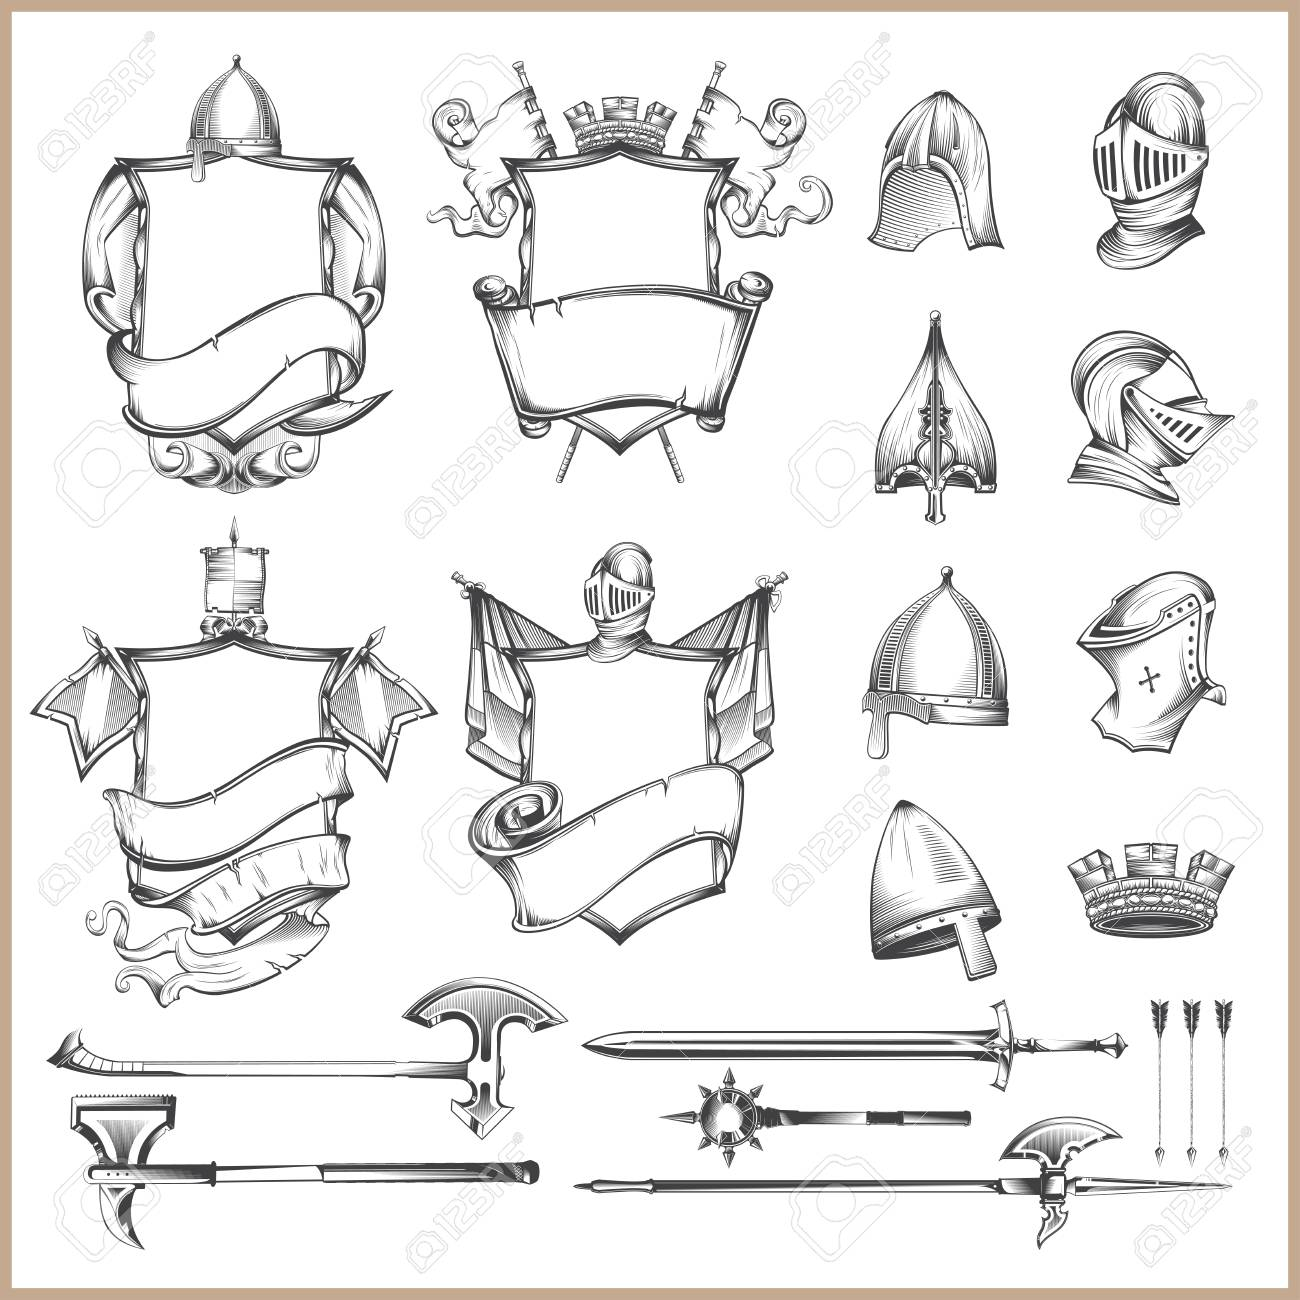 Collection of vector heraldic elements, helmets and medieval weapons - 95631636